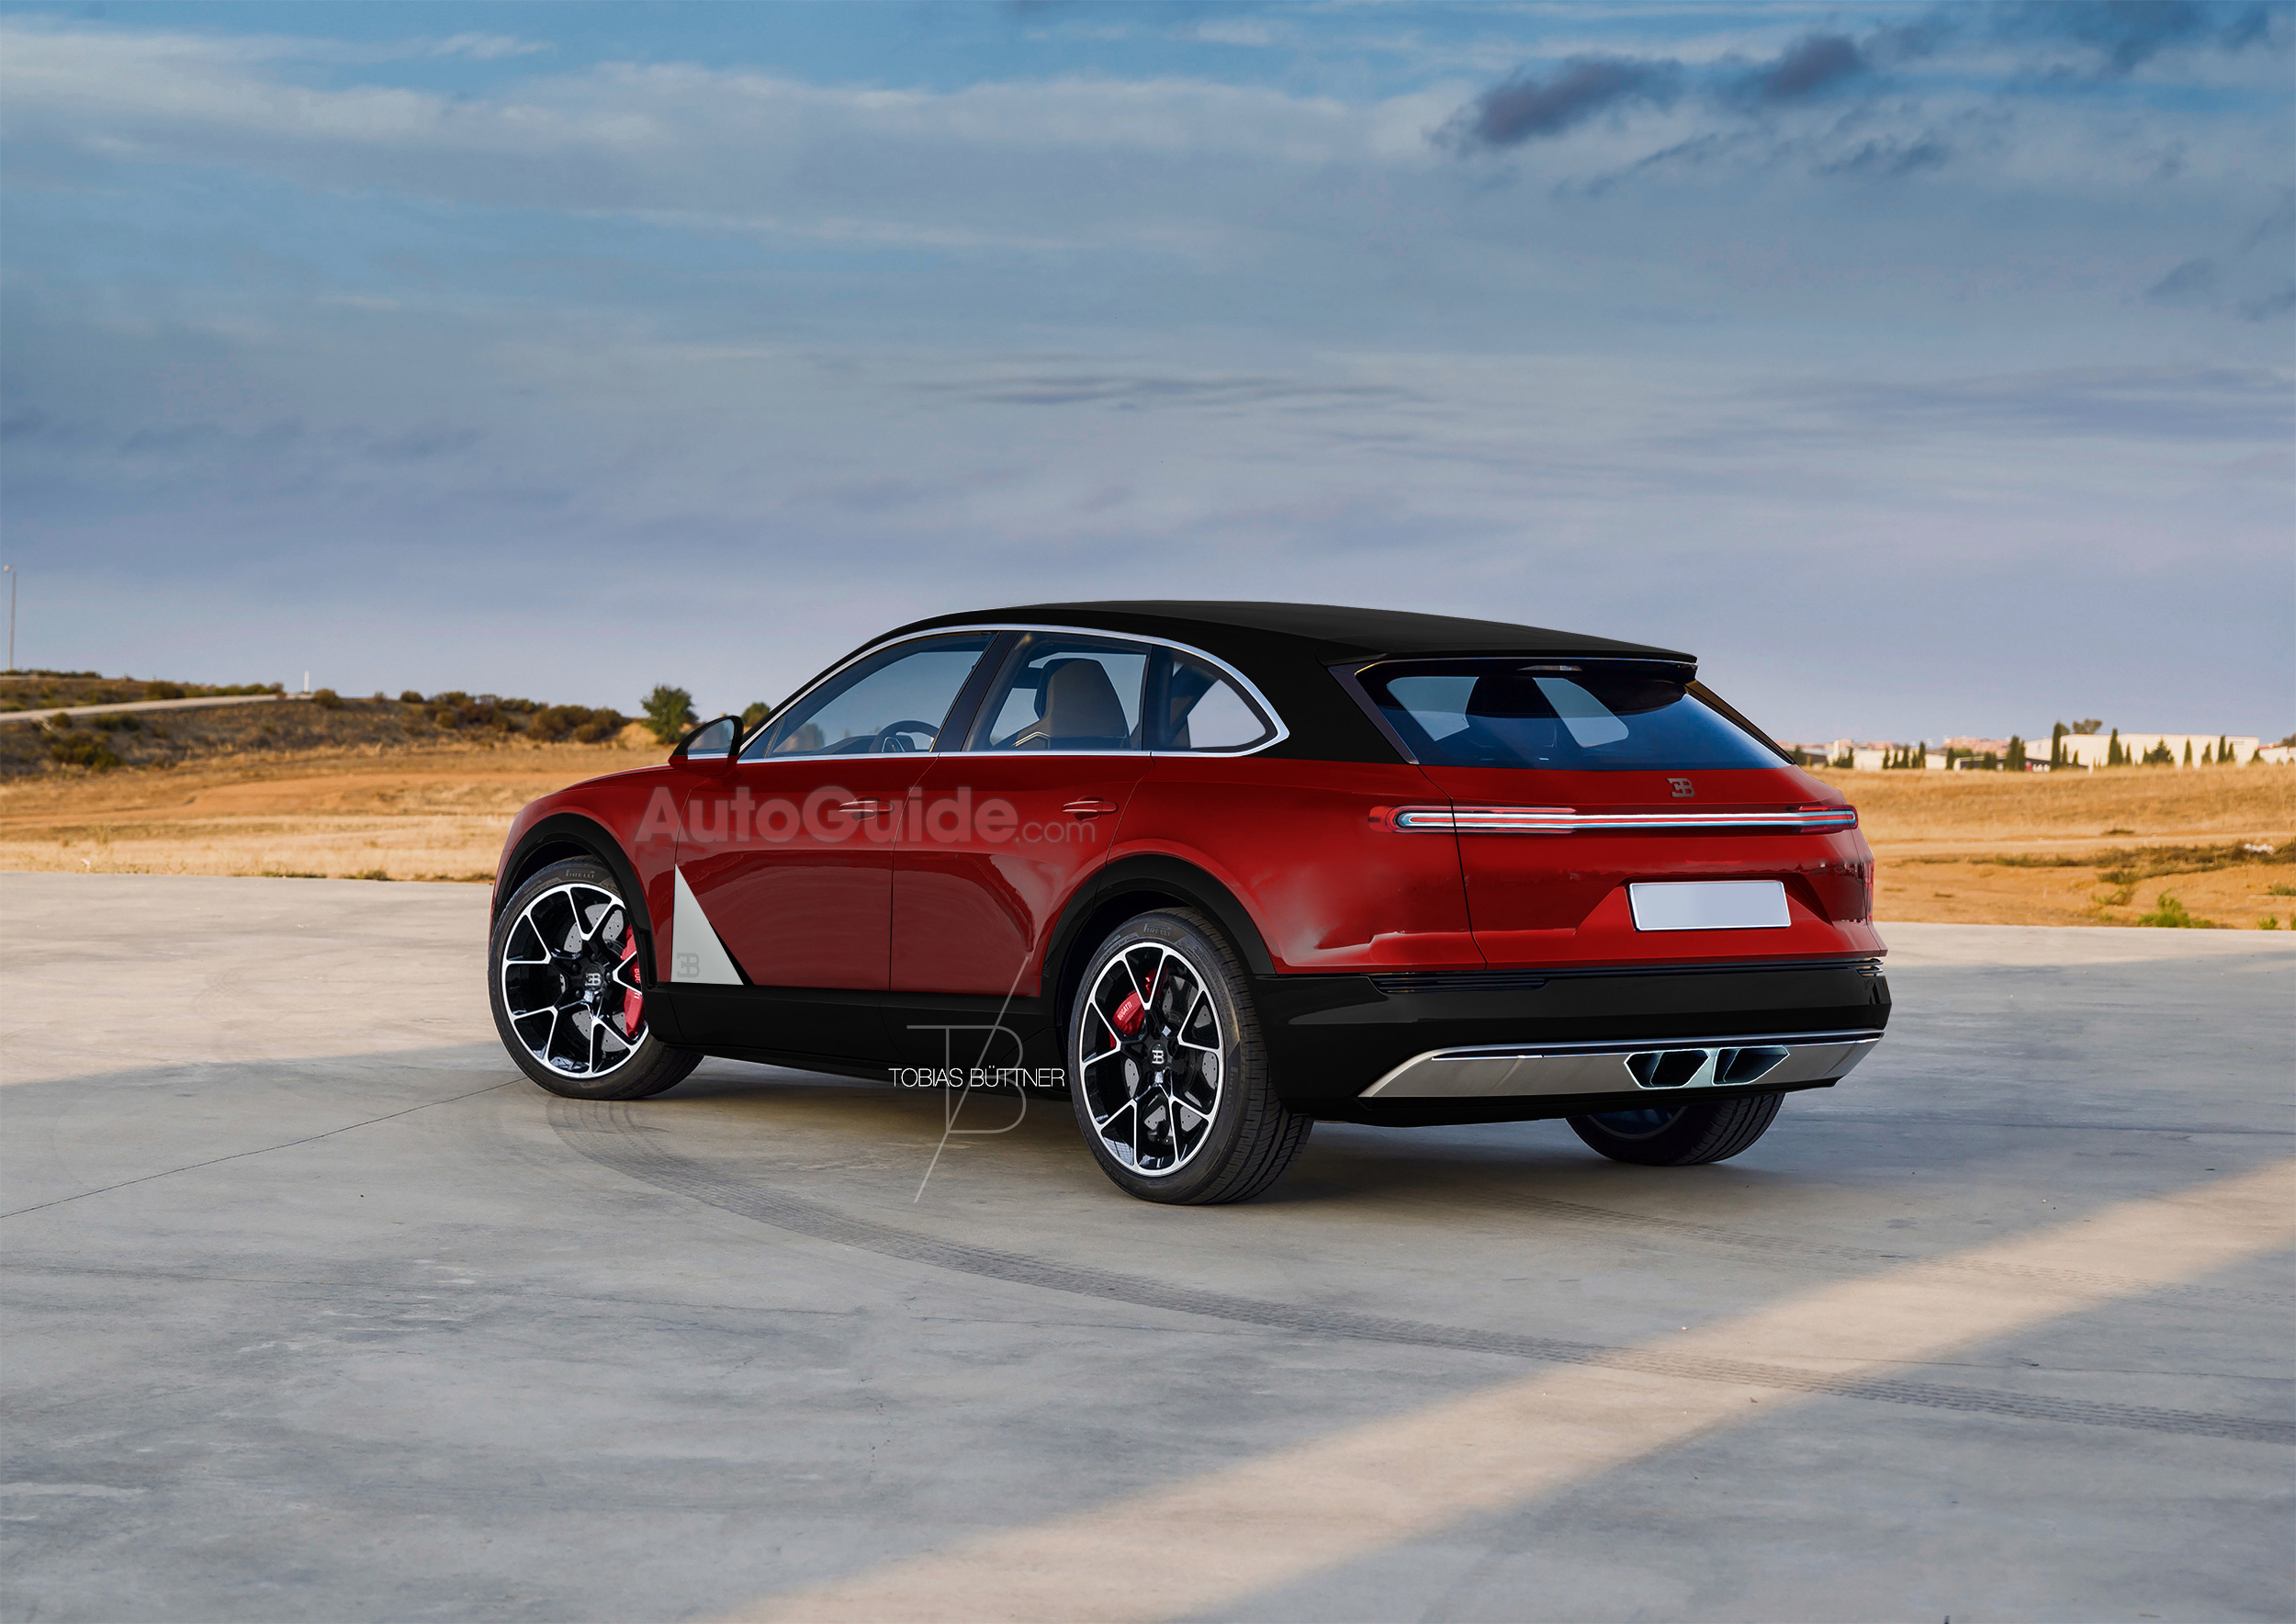 Is This Imagined Bugatti SUV Crazy Awesome or Crazy Stupid